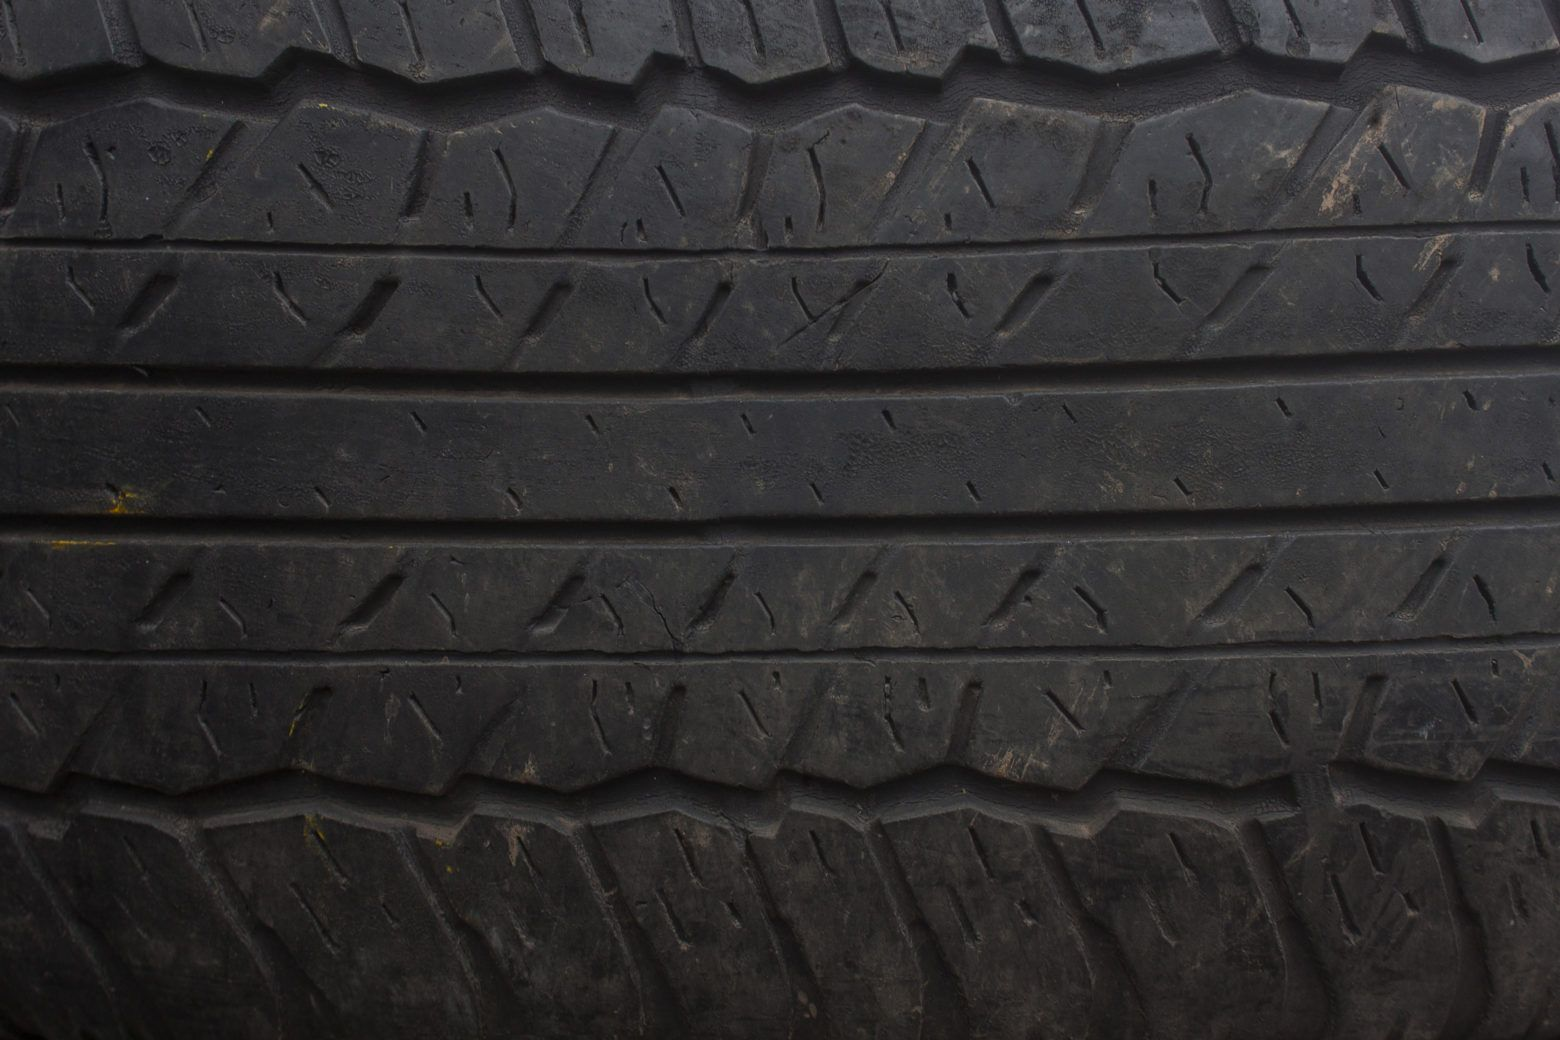 Winter Tires Vancouver >> truck-rubber-tyre-old-texture-download-free-photo-hires-texture-reddblue-sets-015 | Texture ...